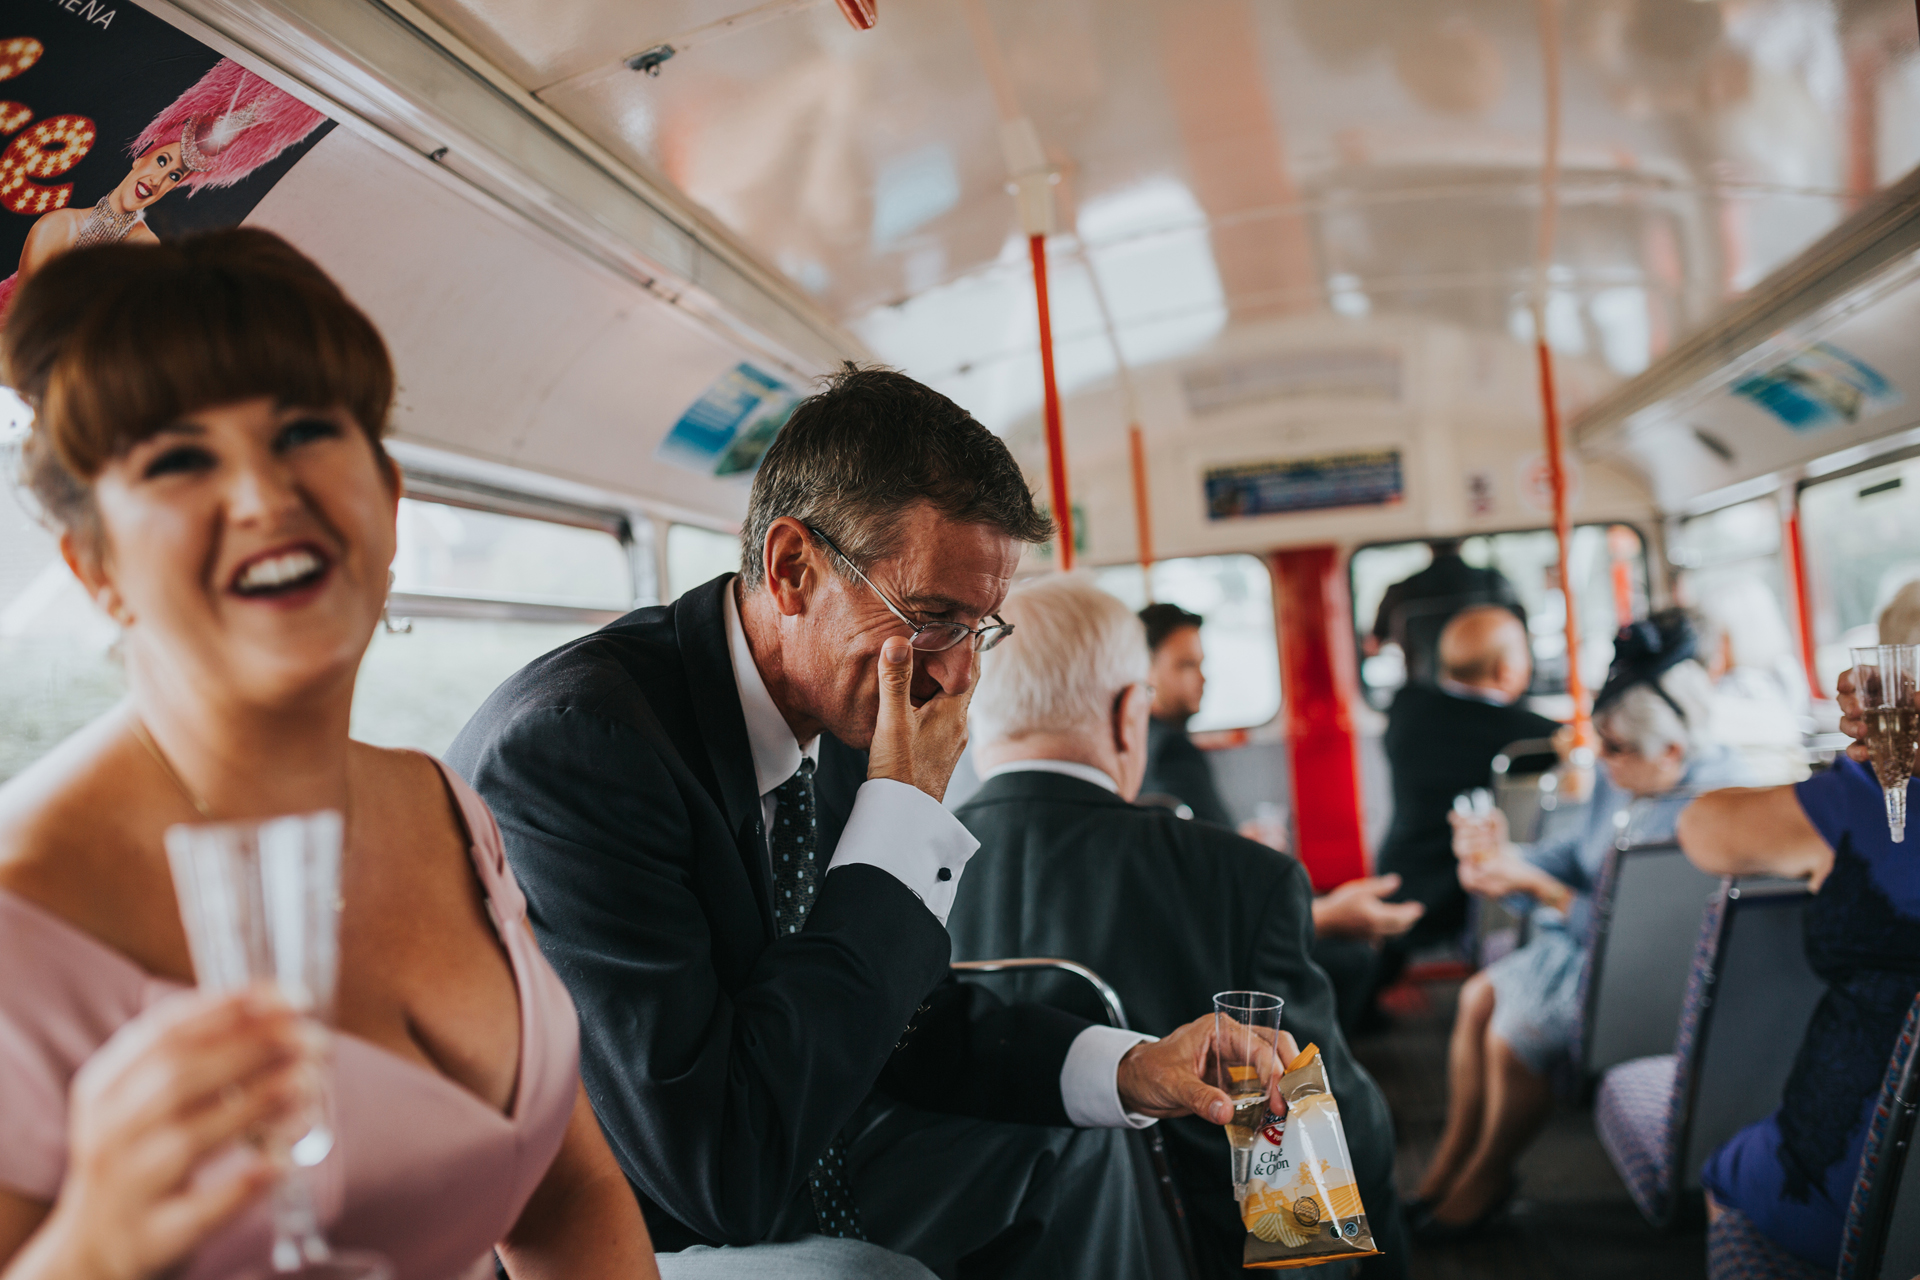 Guests laugh on the top deck of the wedding bus.